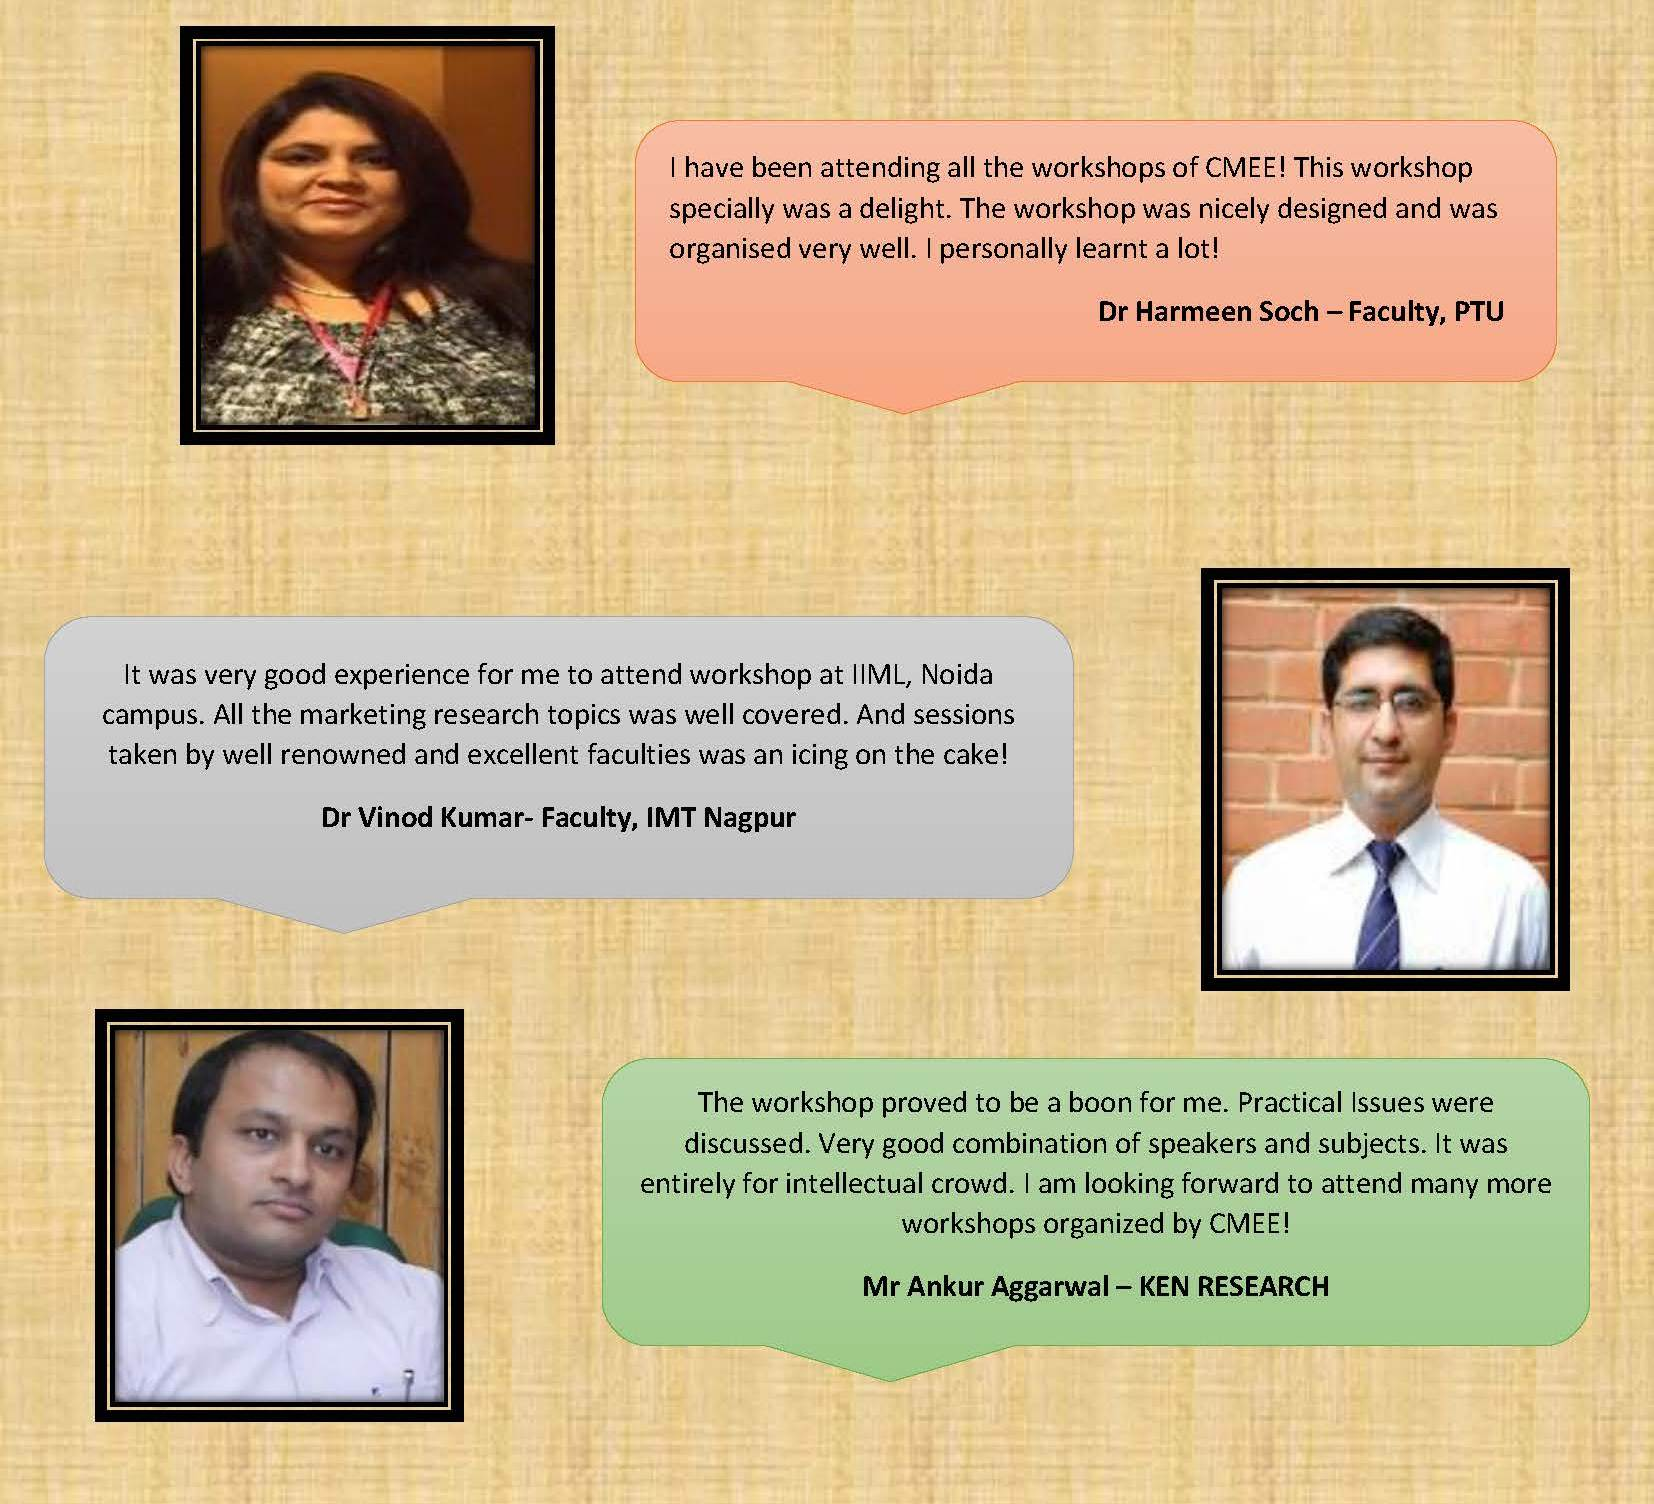 Feedback received from Academicians of Workshop on Teaching Marketing Reseach